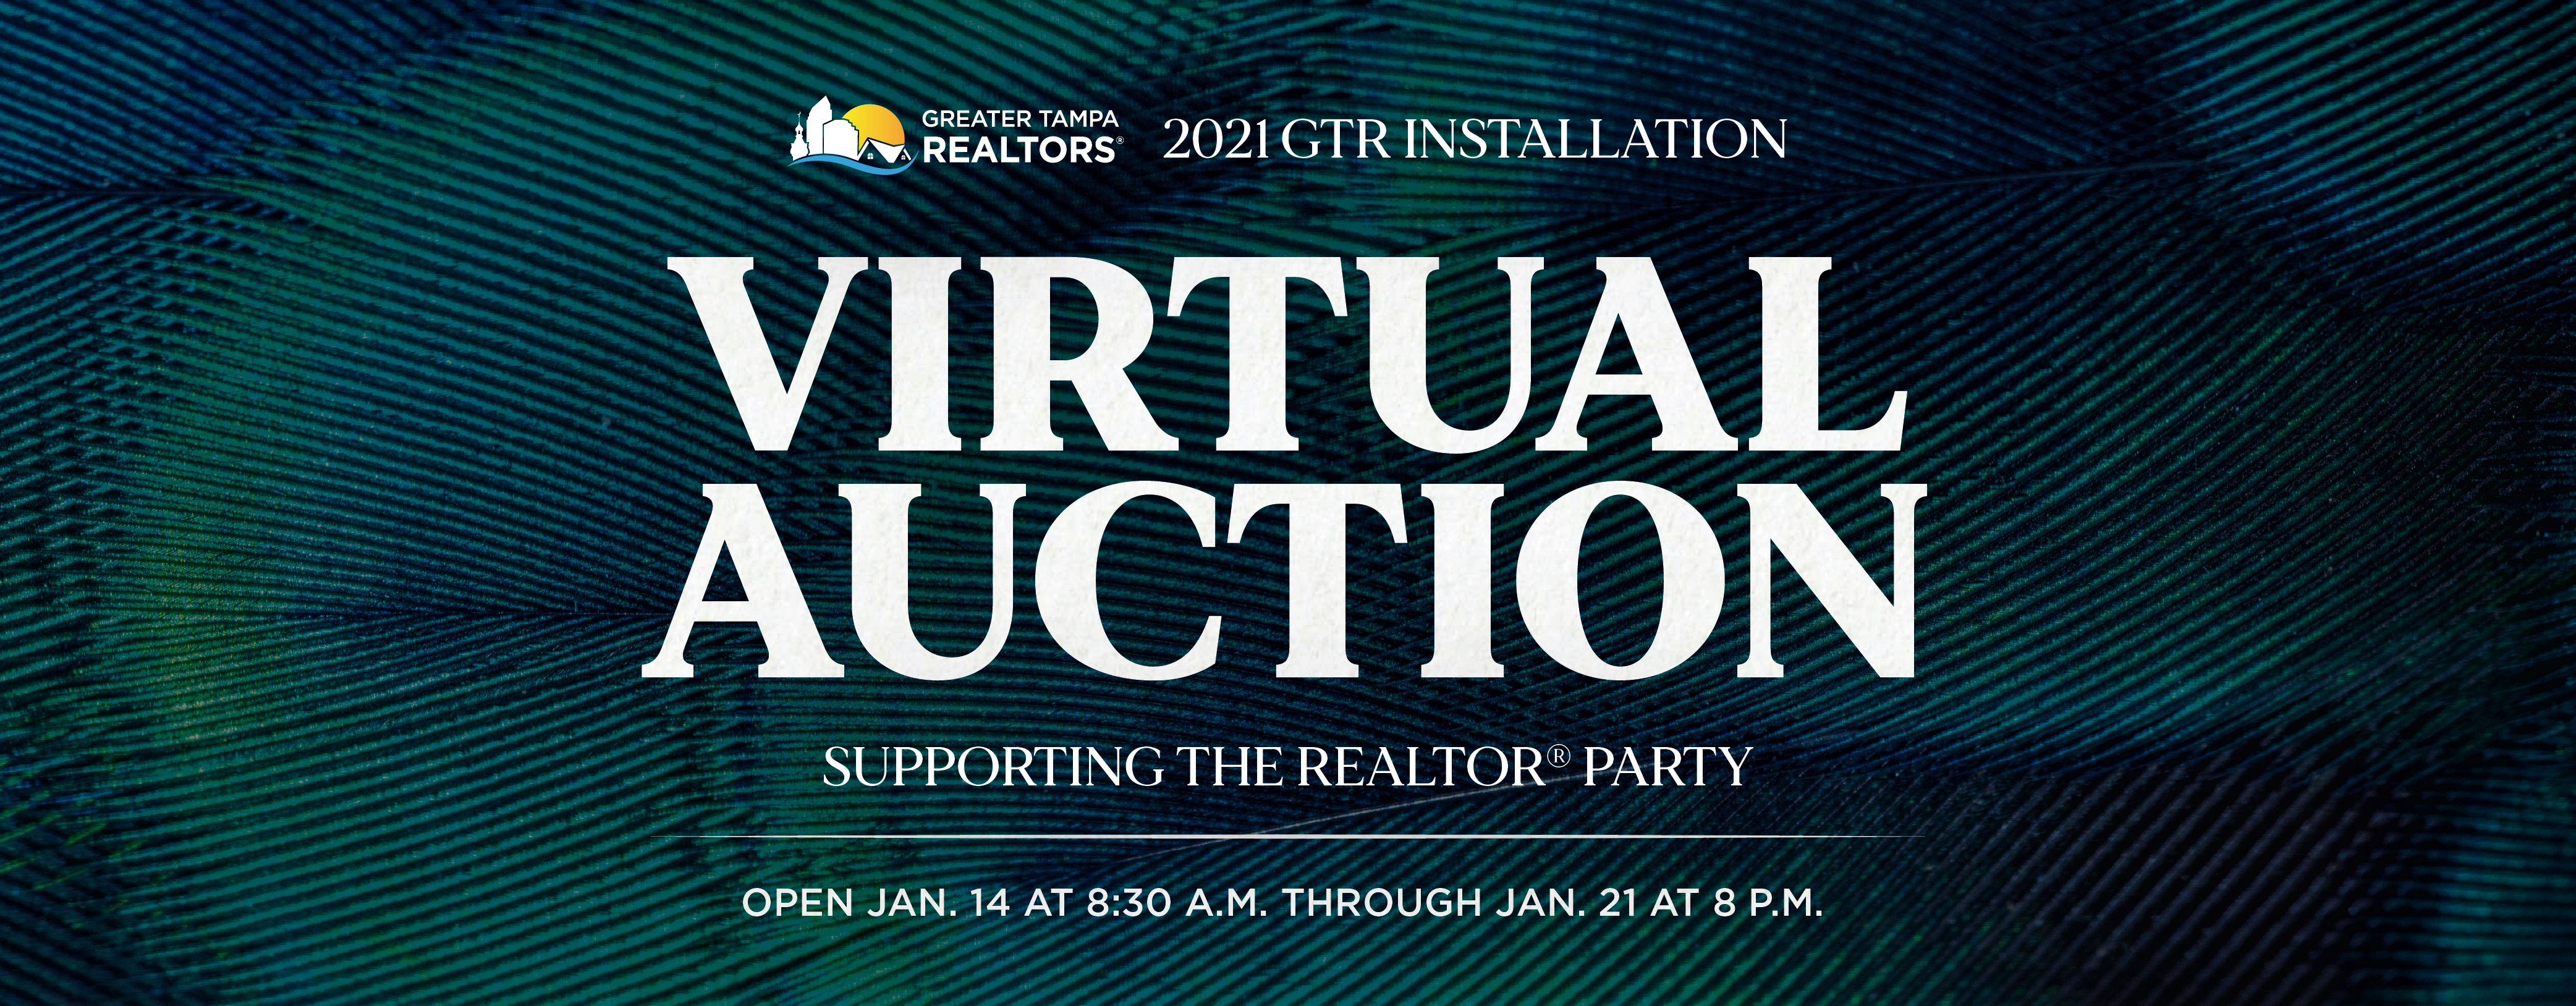 2021 GTR installation virtual auction. Supporting the Realtors party begins on Jan. 14 at 8:30 a.m. through Jan. 21 at 8 p.m.